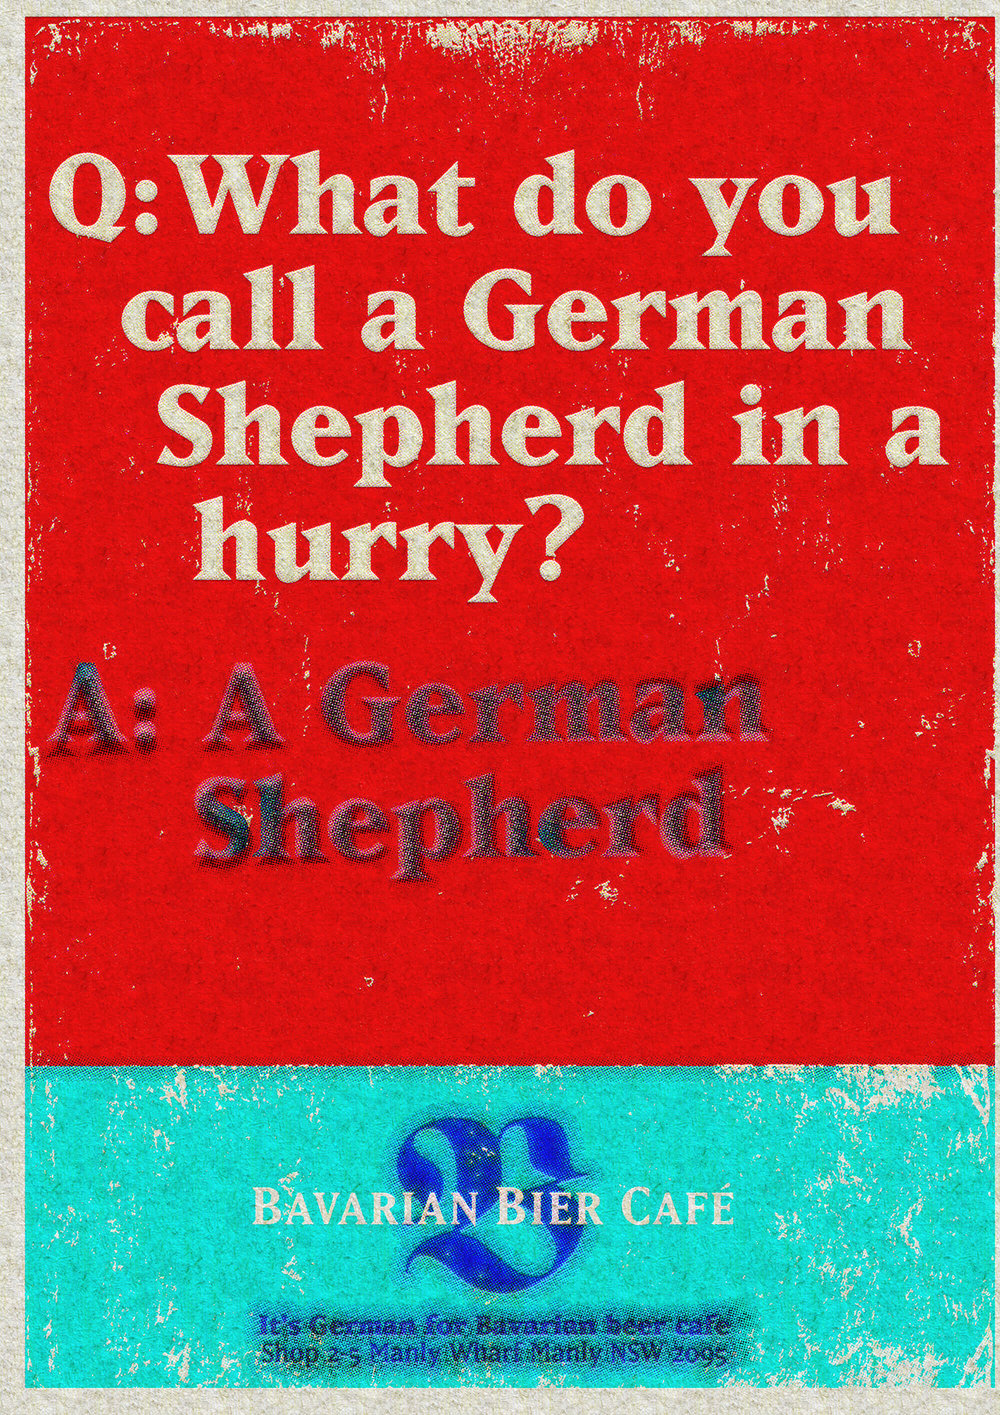 Bavarian Bier Café: print Ad. Q: What do you call a German Shepard in a hurry? A: A German Shepard.